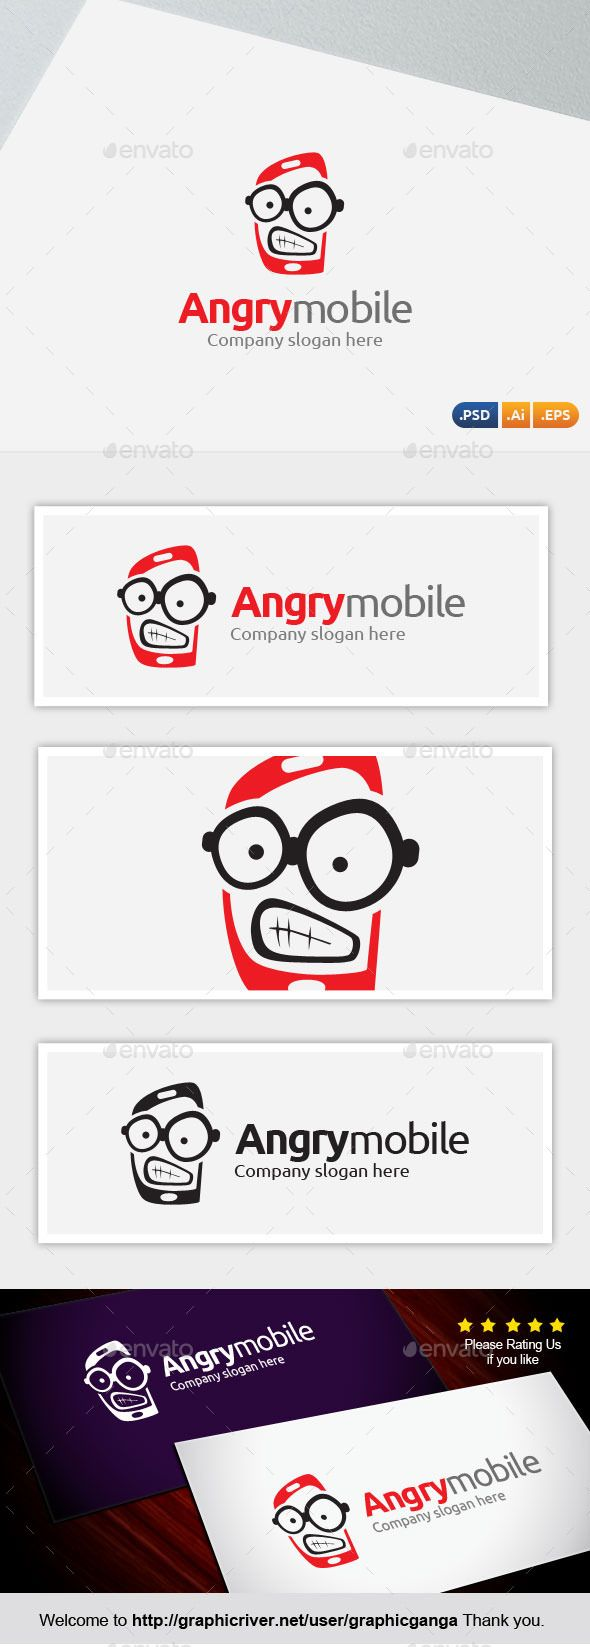 #Angry Mobile - Abstract #Logo Templates Download here:  https://graphicriver.net/item/angry-mobile/11524827?ref=alena994